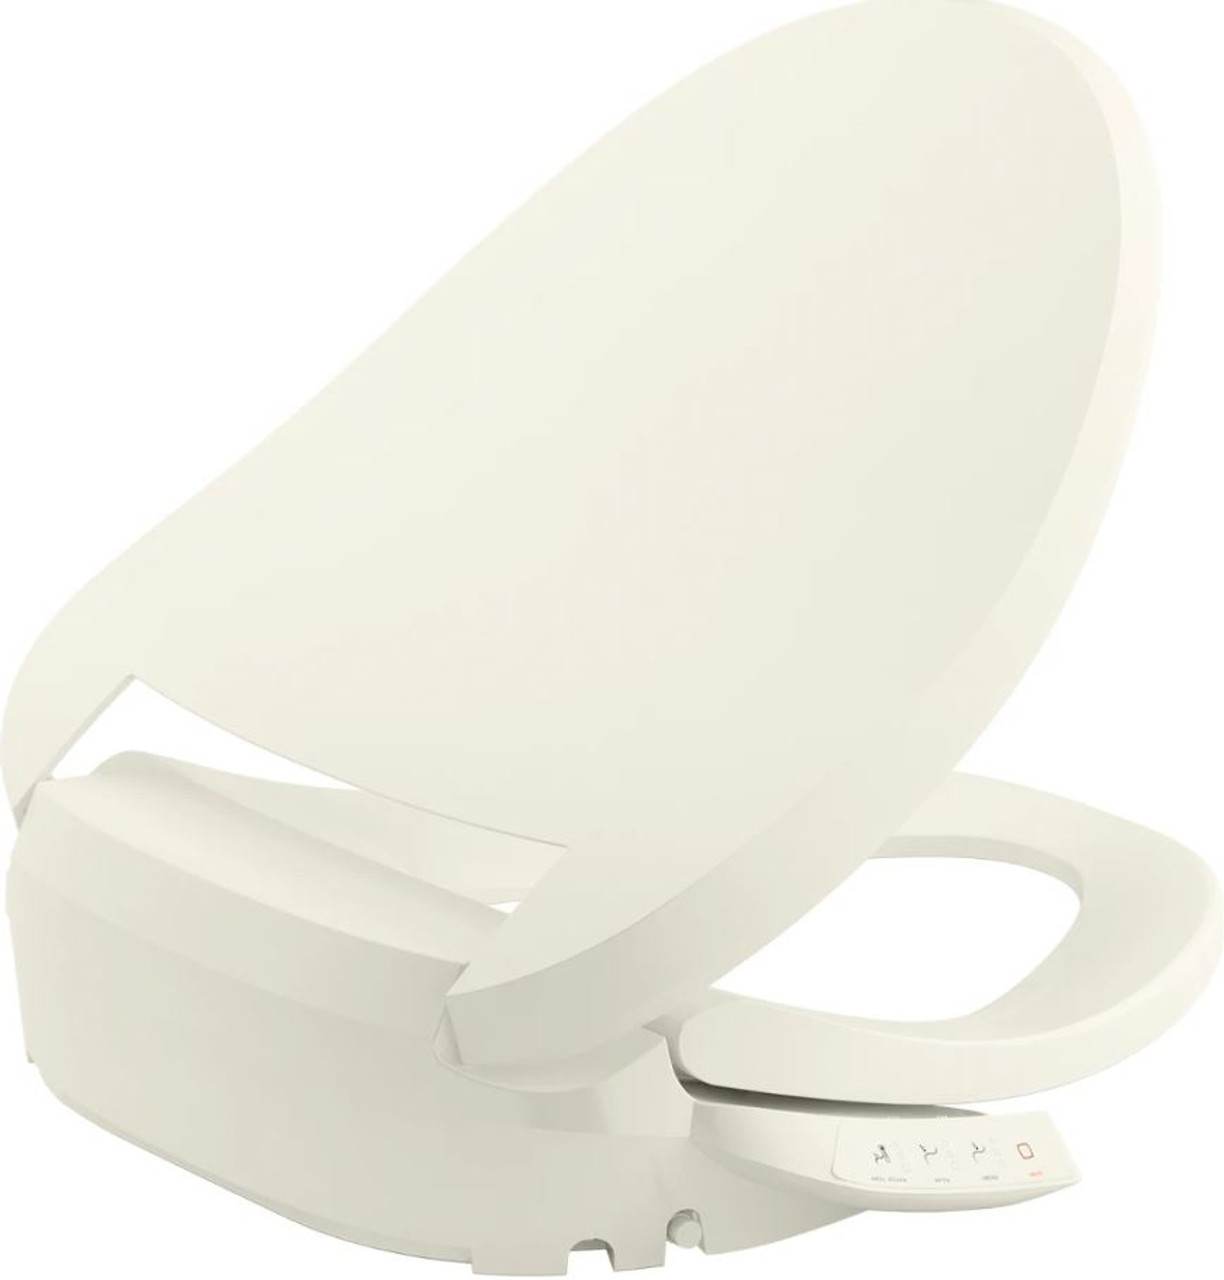 Kohler C3 050 Elongated Closed Bidet Seat Royal Bath Place